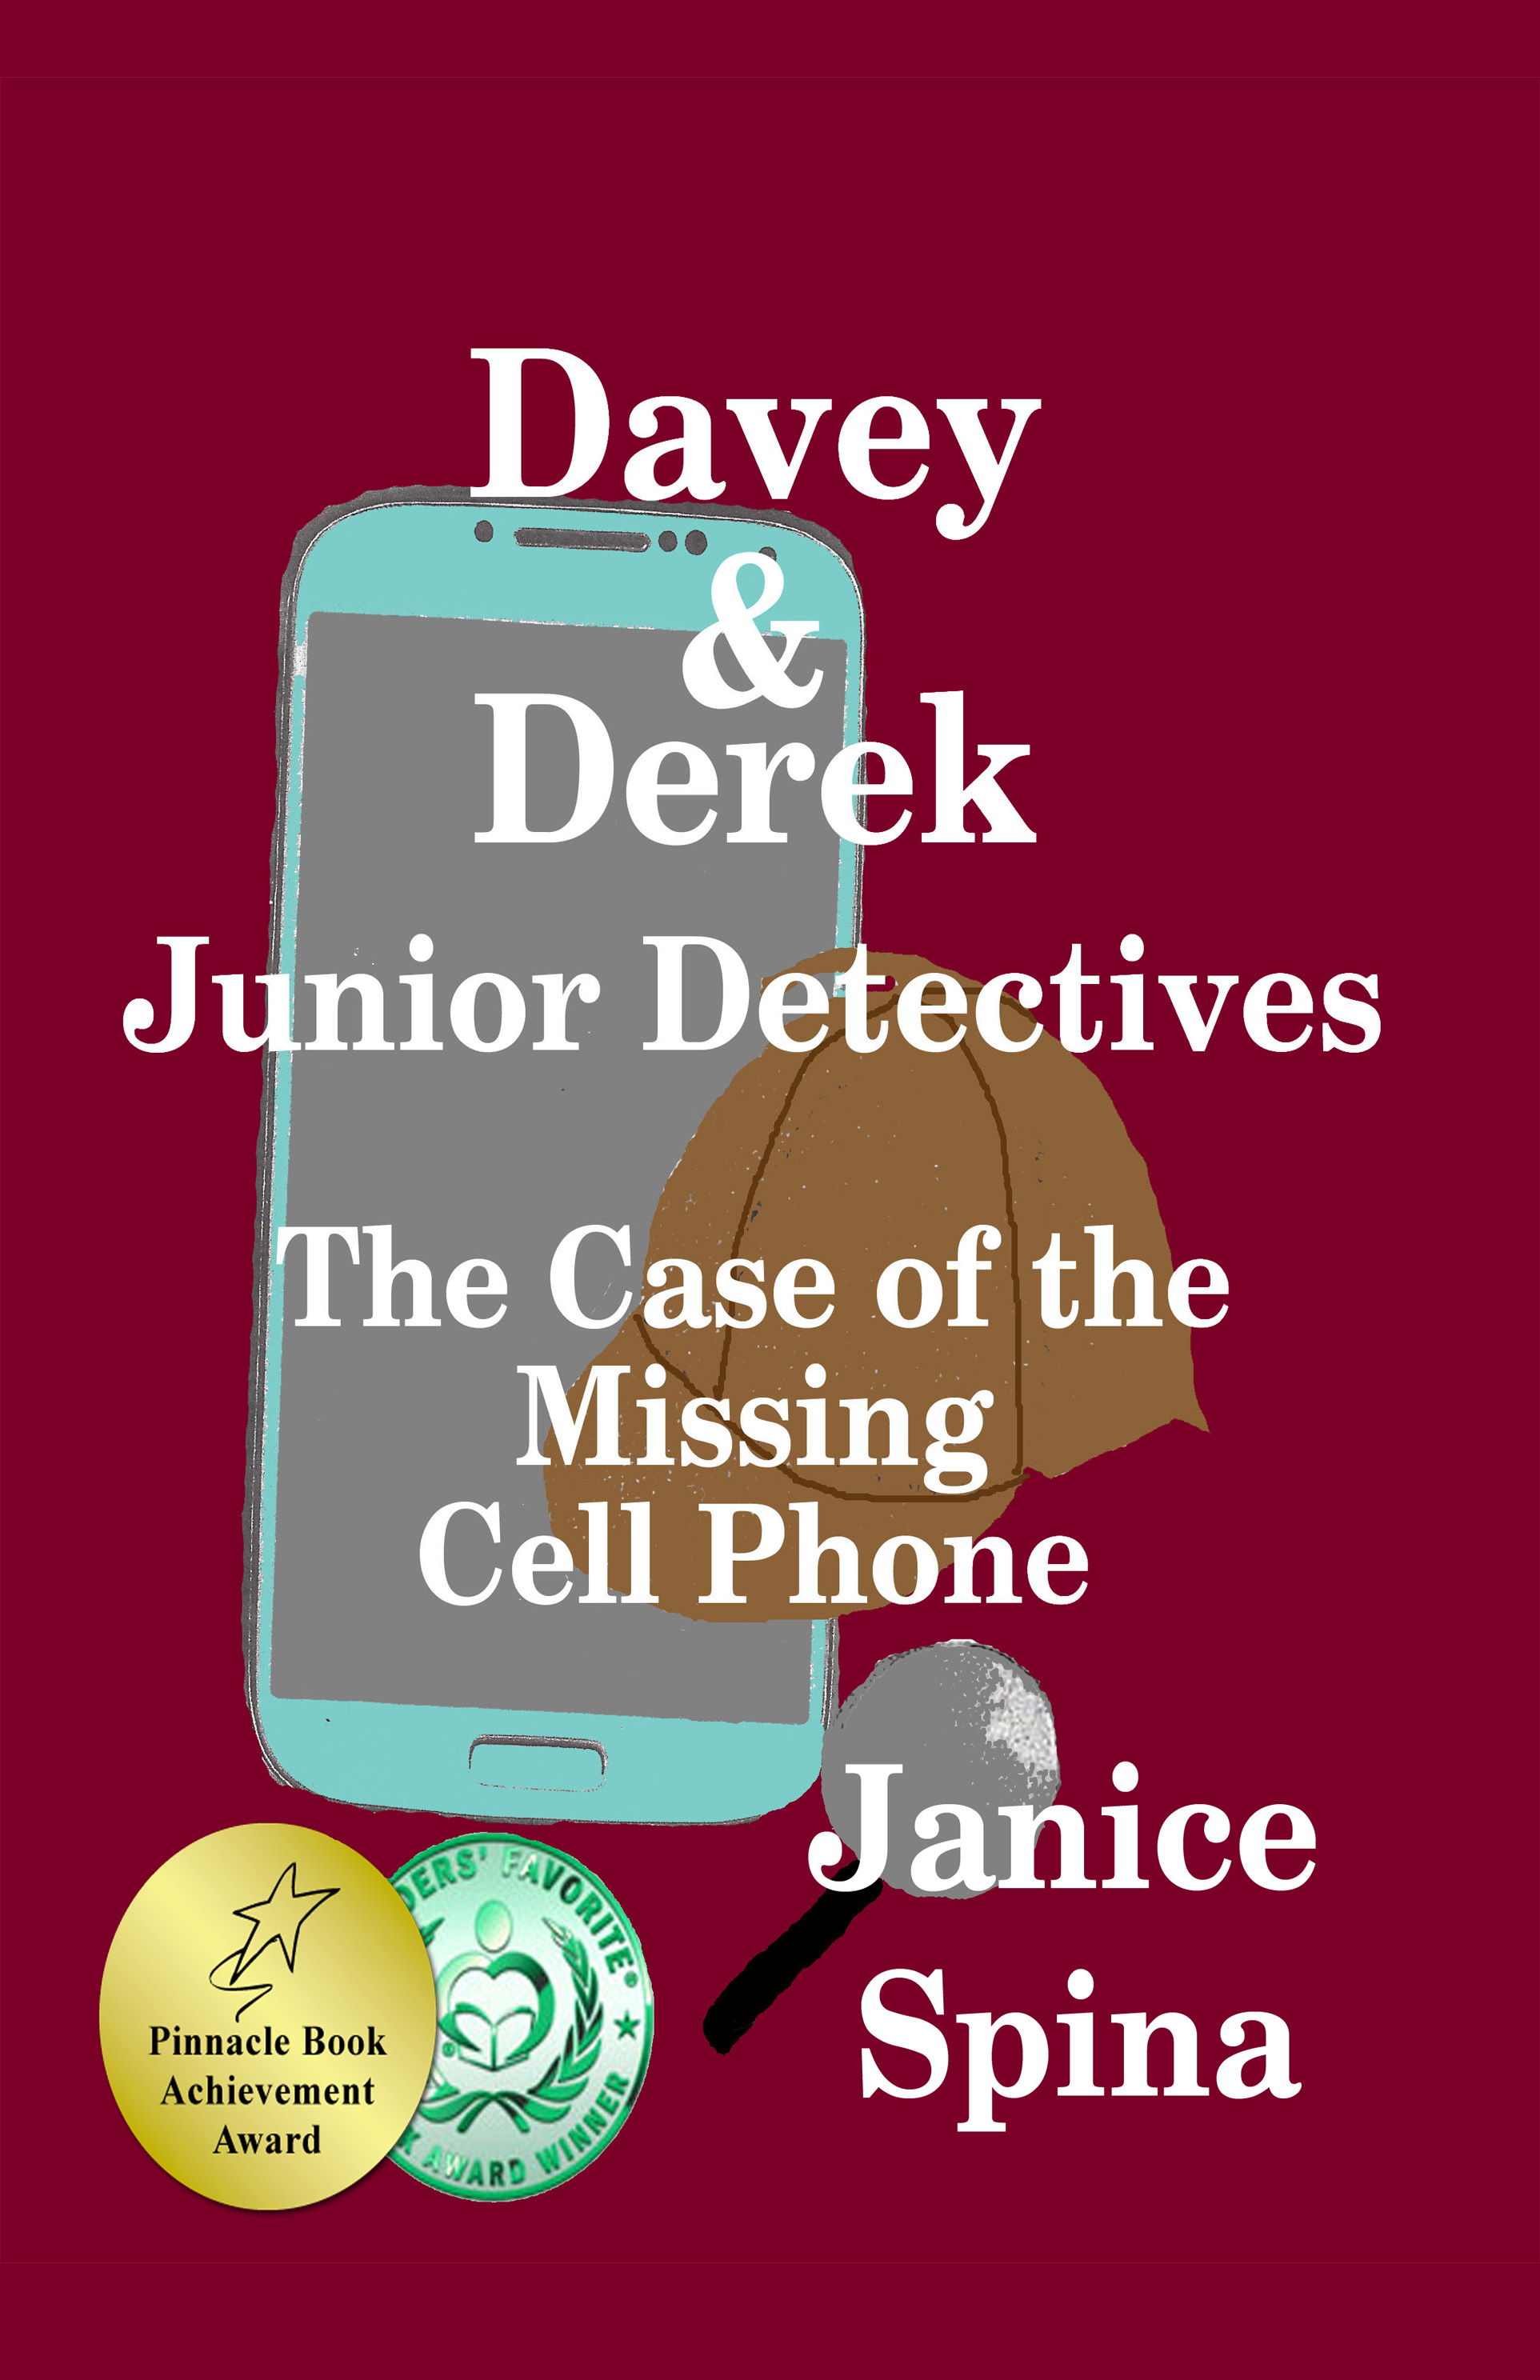 Davey & Derek Junior Detectives The Case of the Missing Cell Phone